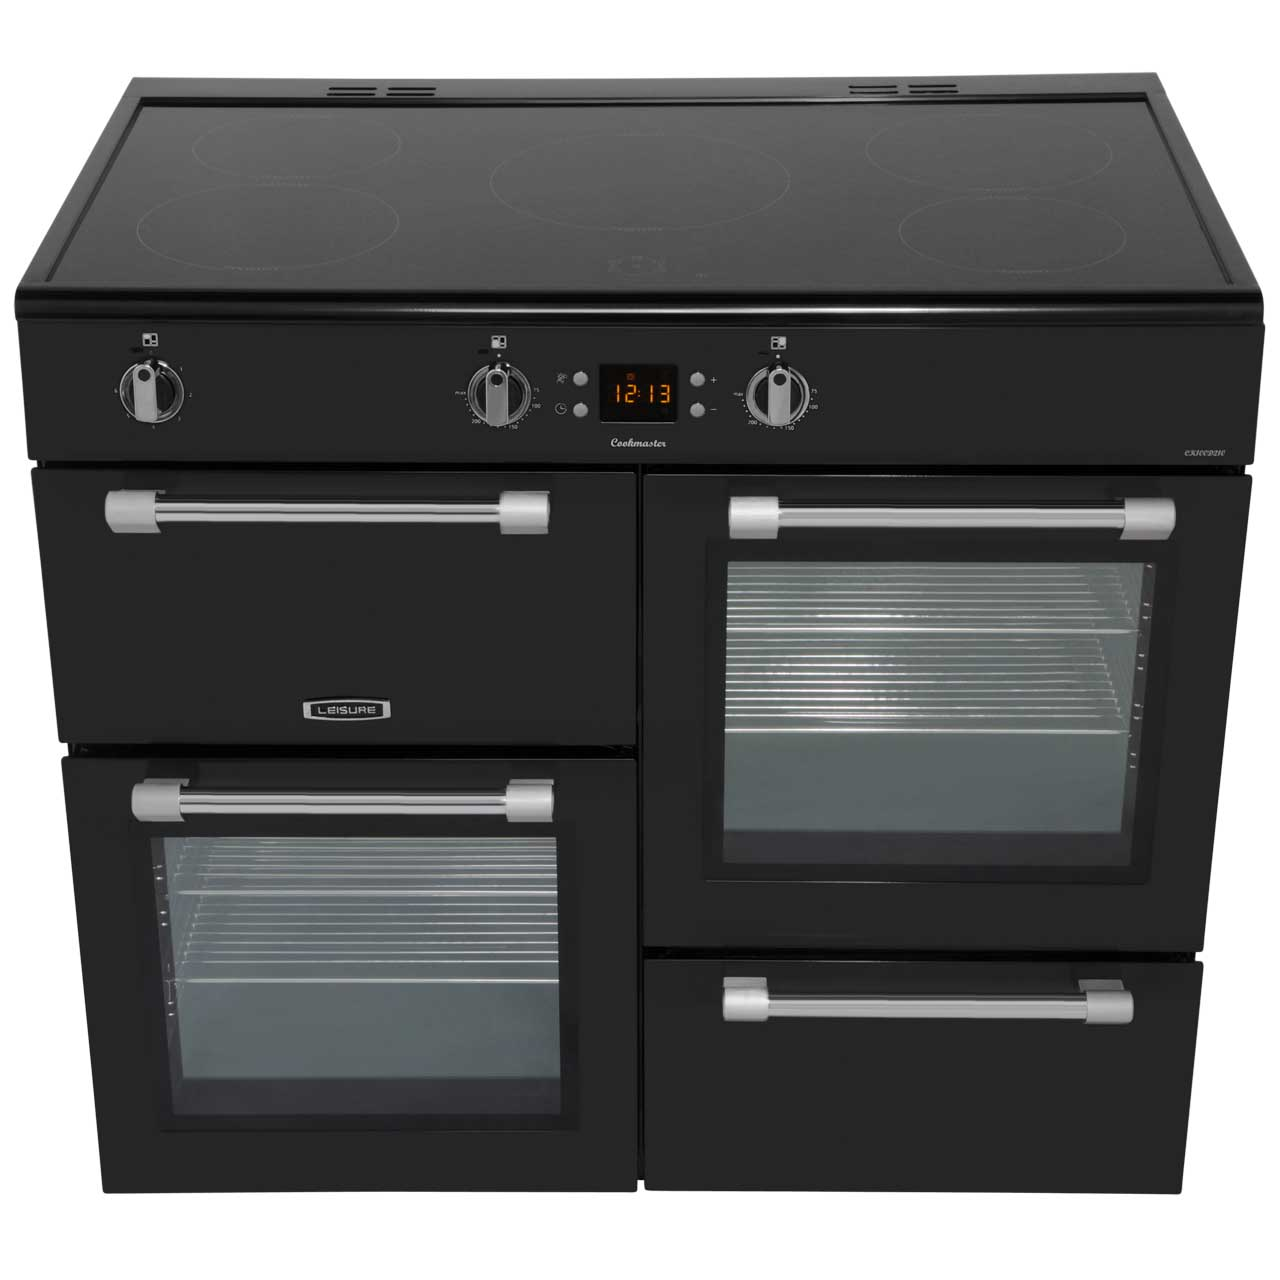 Leisure Ck100d210k Cookmaster 100cm 5 Burners A A Electric